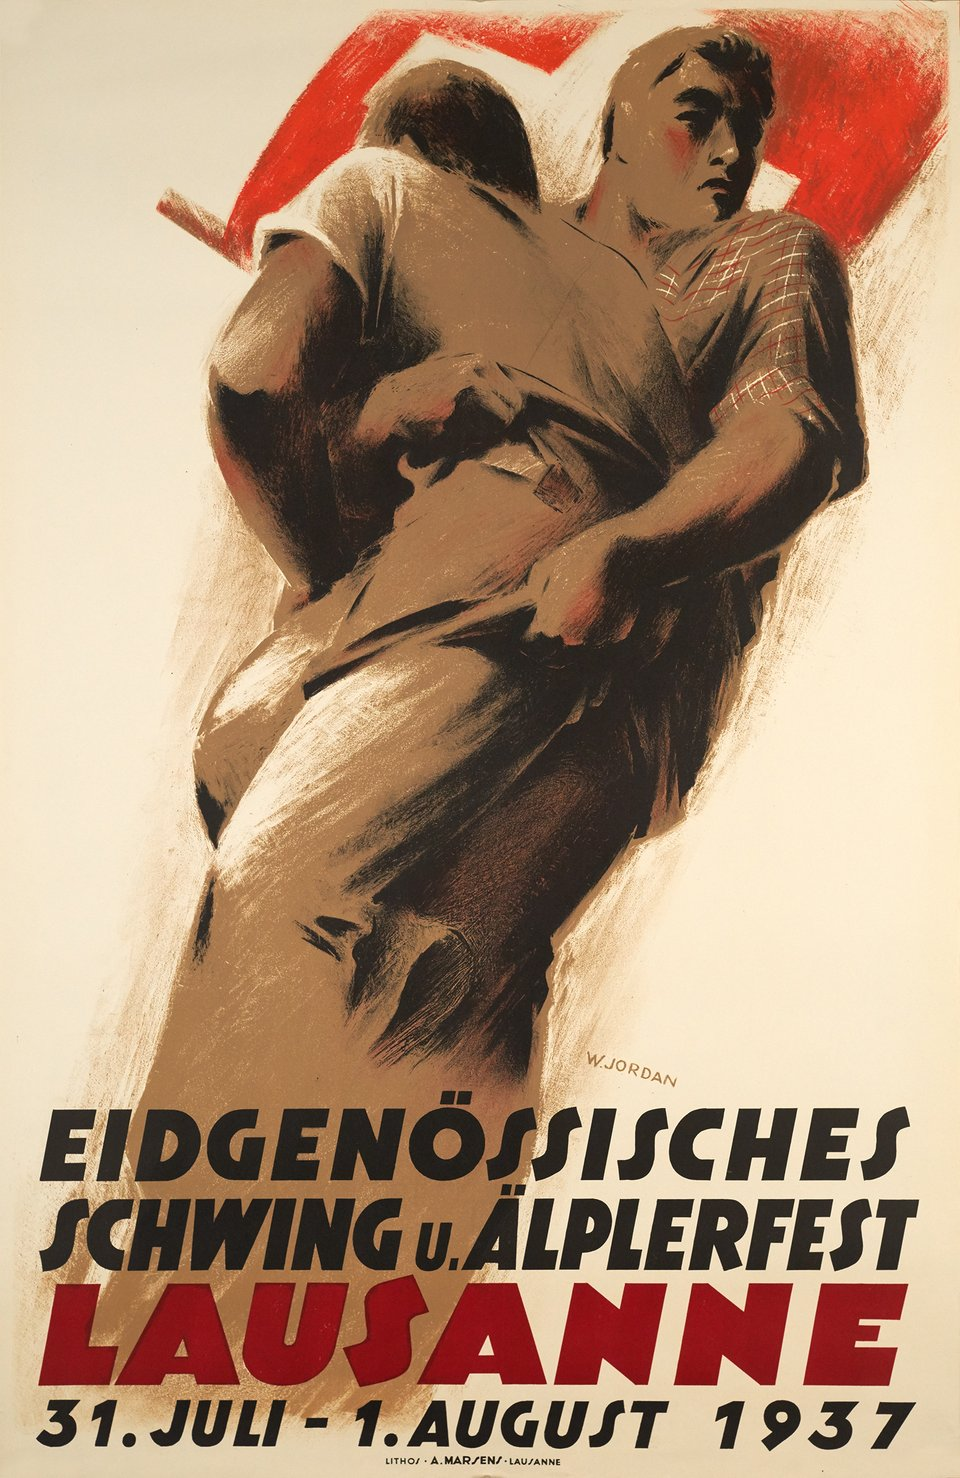 Eidgenössisches Schwing u. Älperfesz Lausanne – Affiche ancienne – Willy JORDAN – 1937